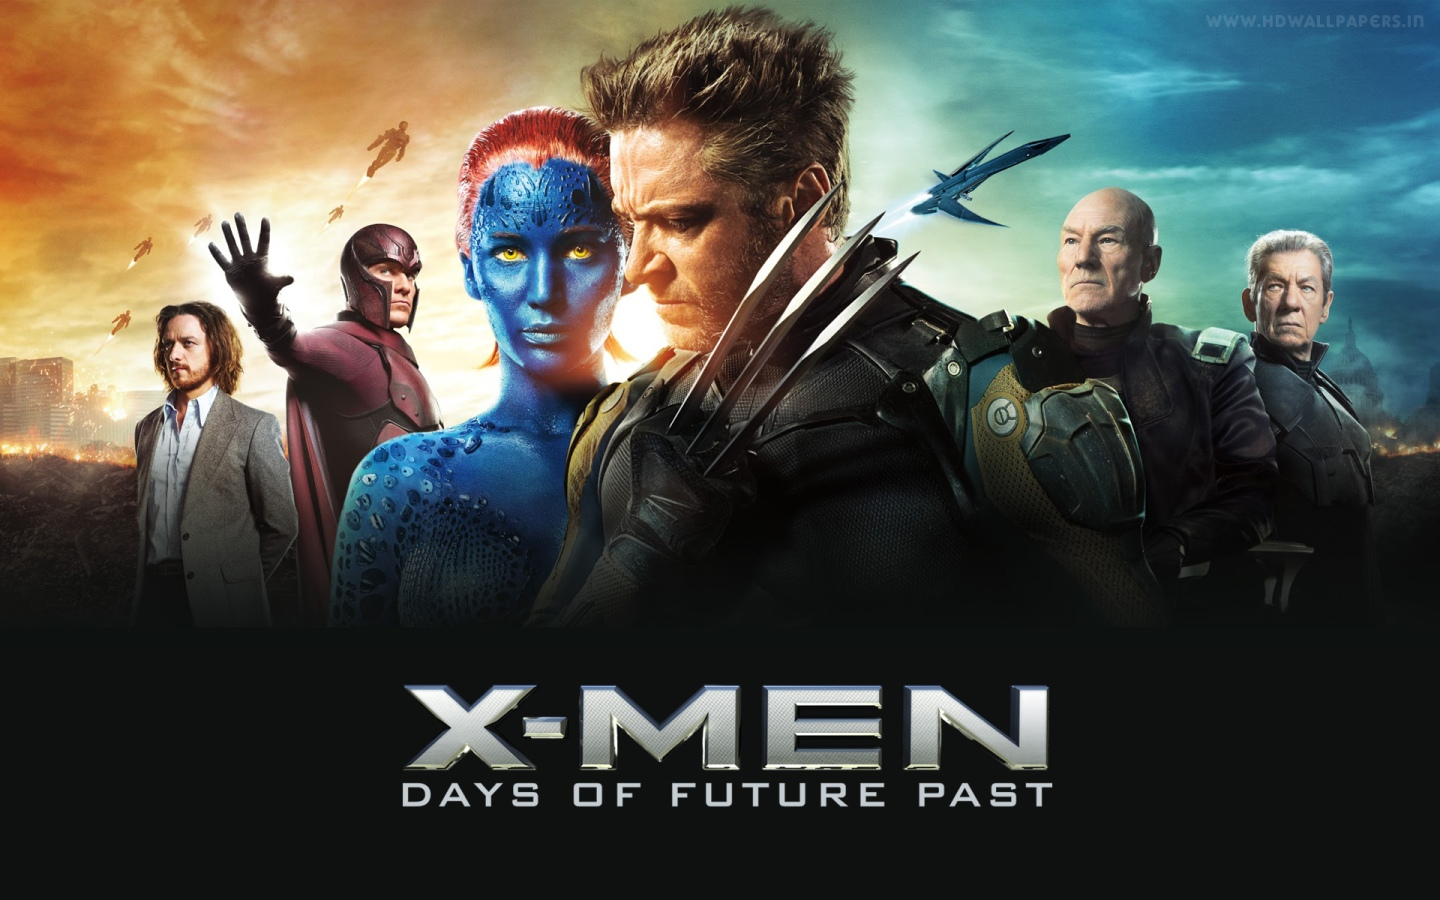 X-Men: Days of Future Past - look at all the plot devices lined up